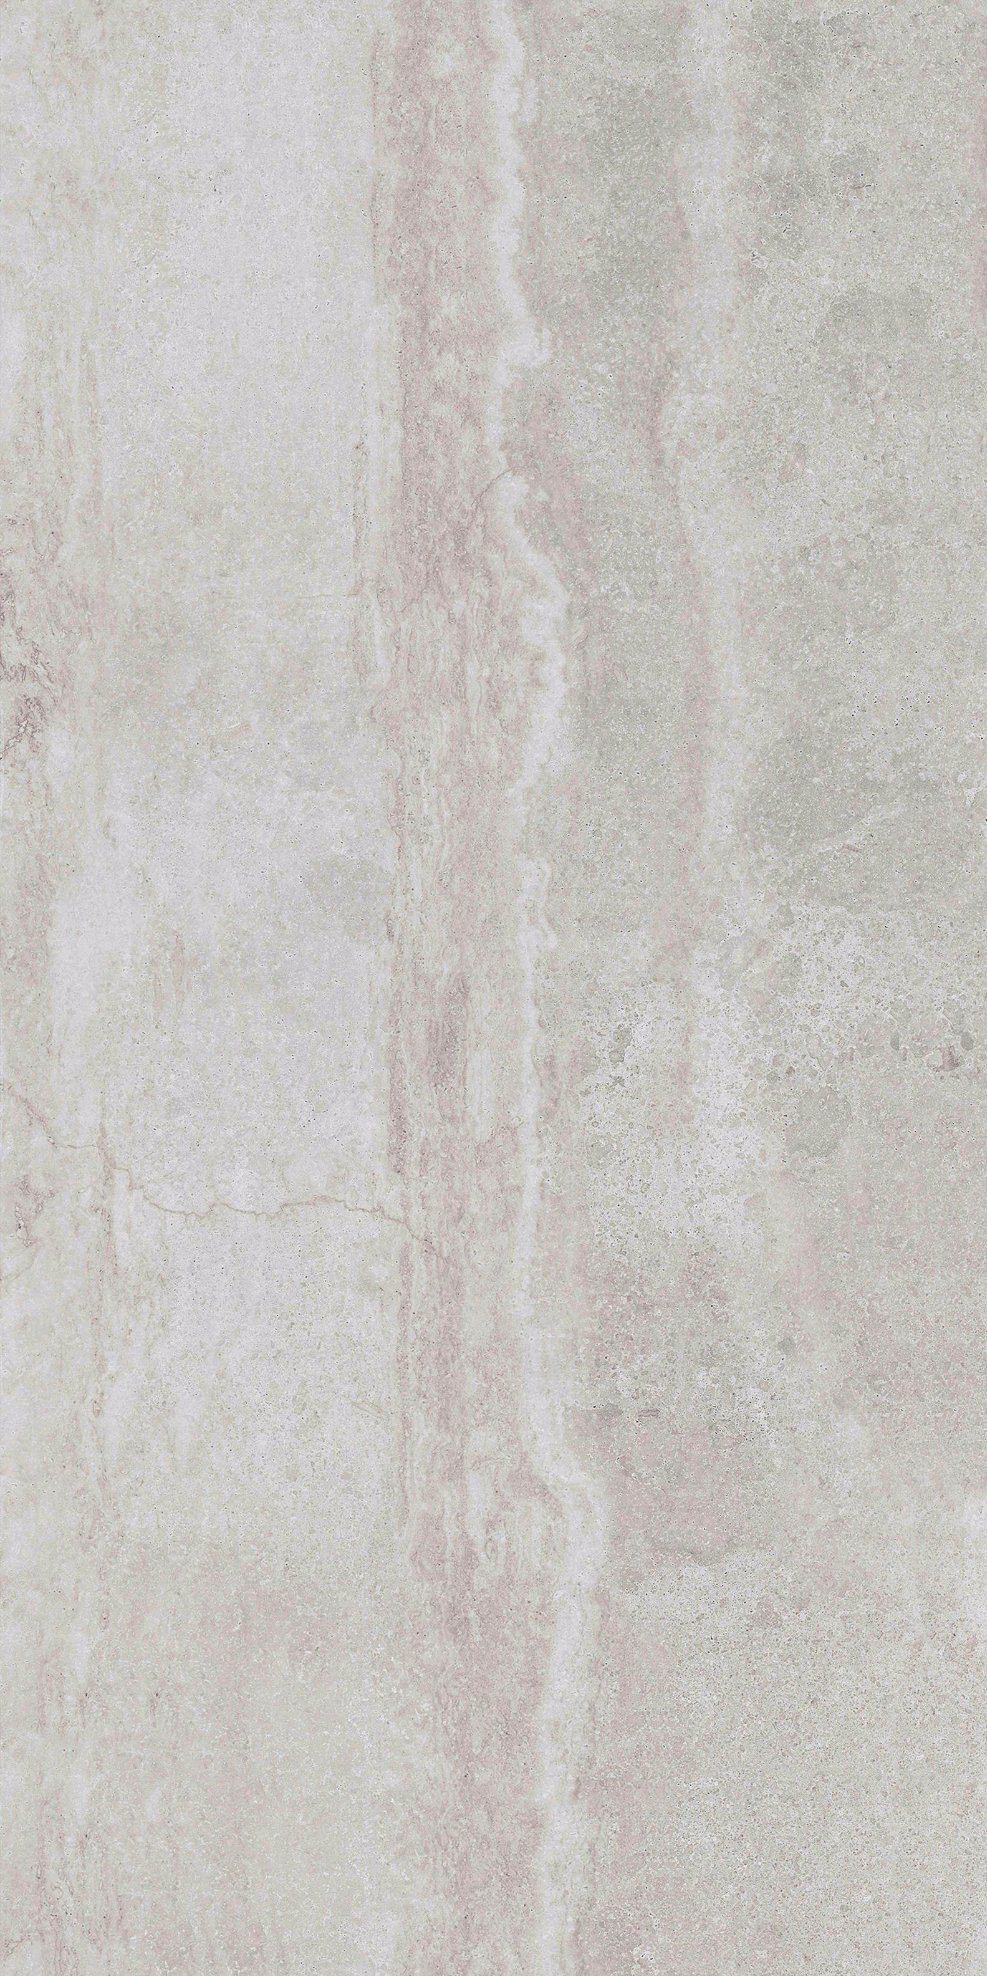 Marble Porcelain Wall Tile & Floor Tile For Home Decoration